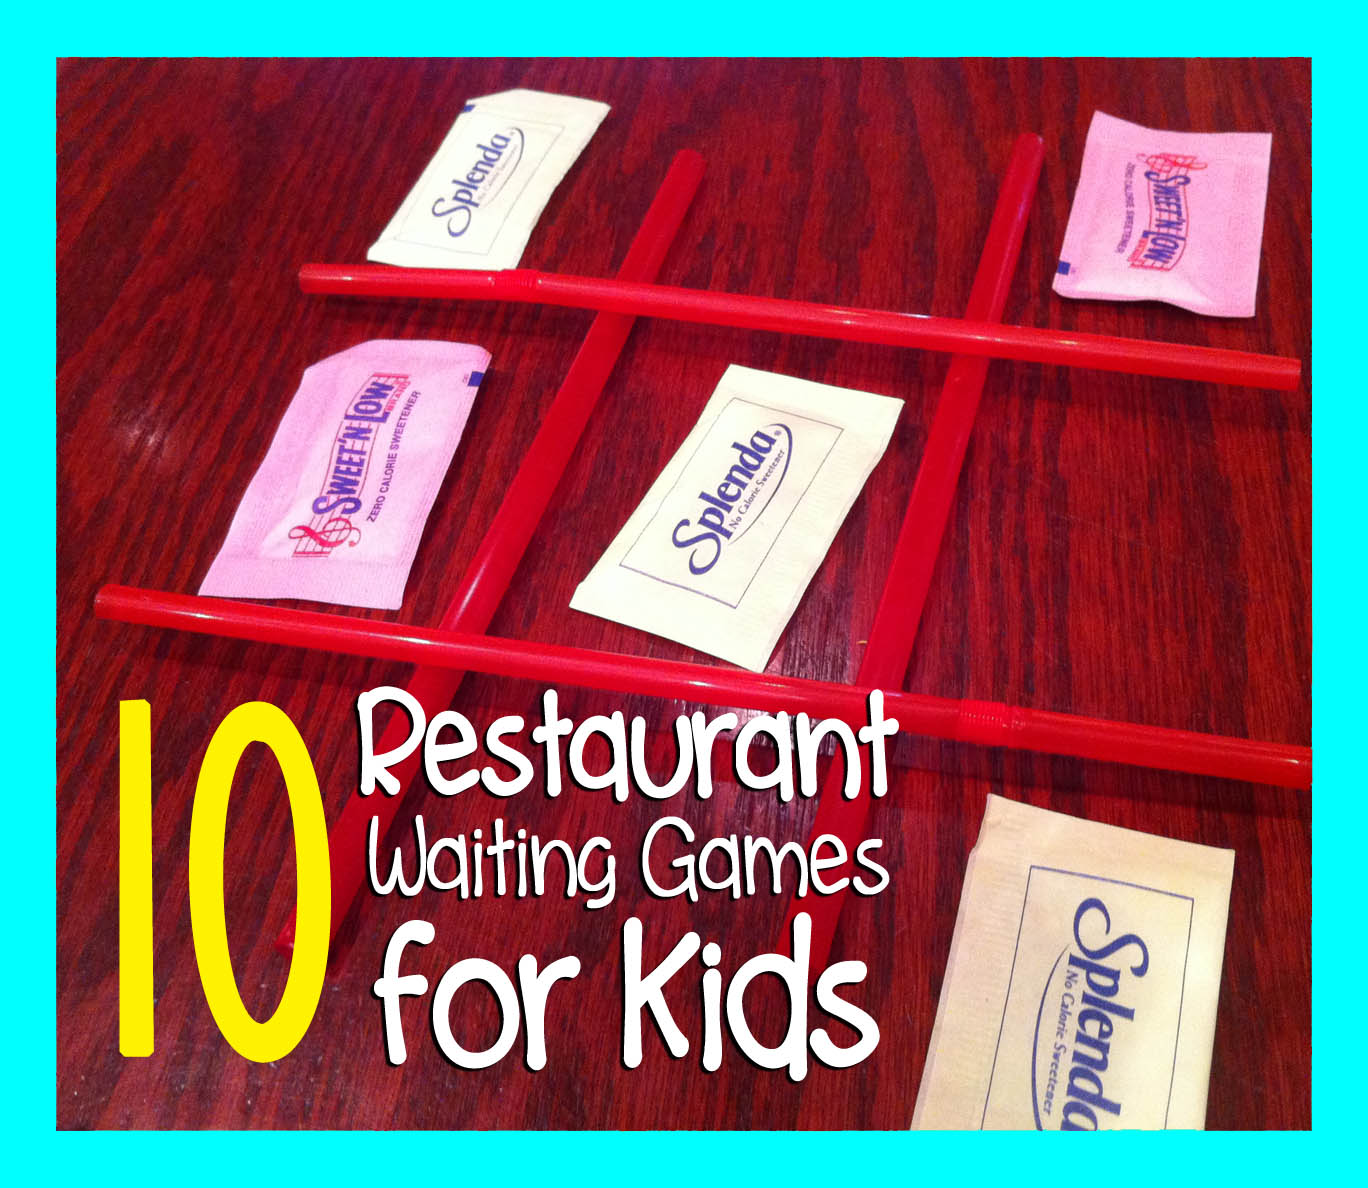 10 restaurant waiting games to play with kids repeat crafter me before we had kids my husband and i would eat out all the time and enjoyed our time together discovering new foods and restaurants geenschuldenfo Choice Image